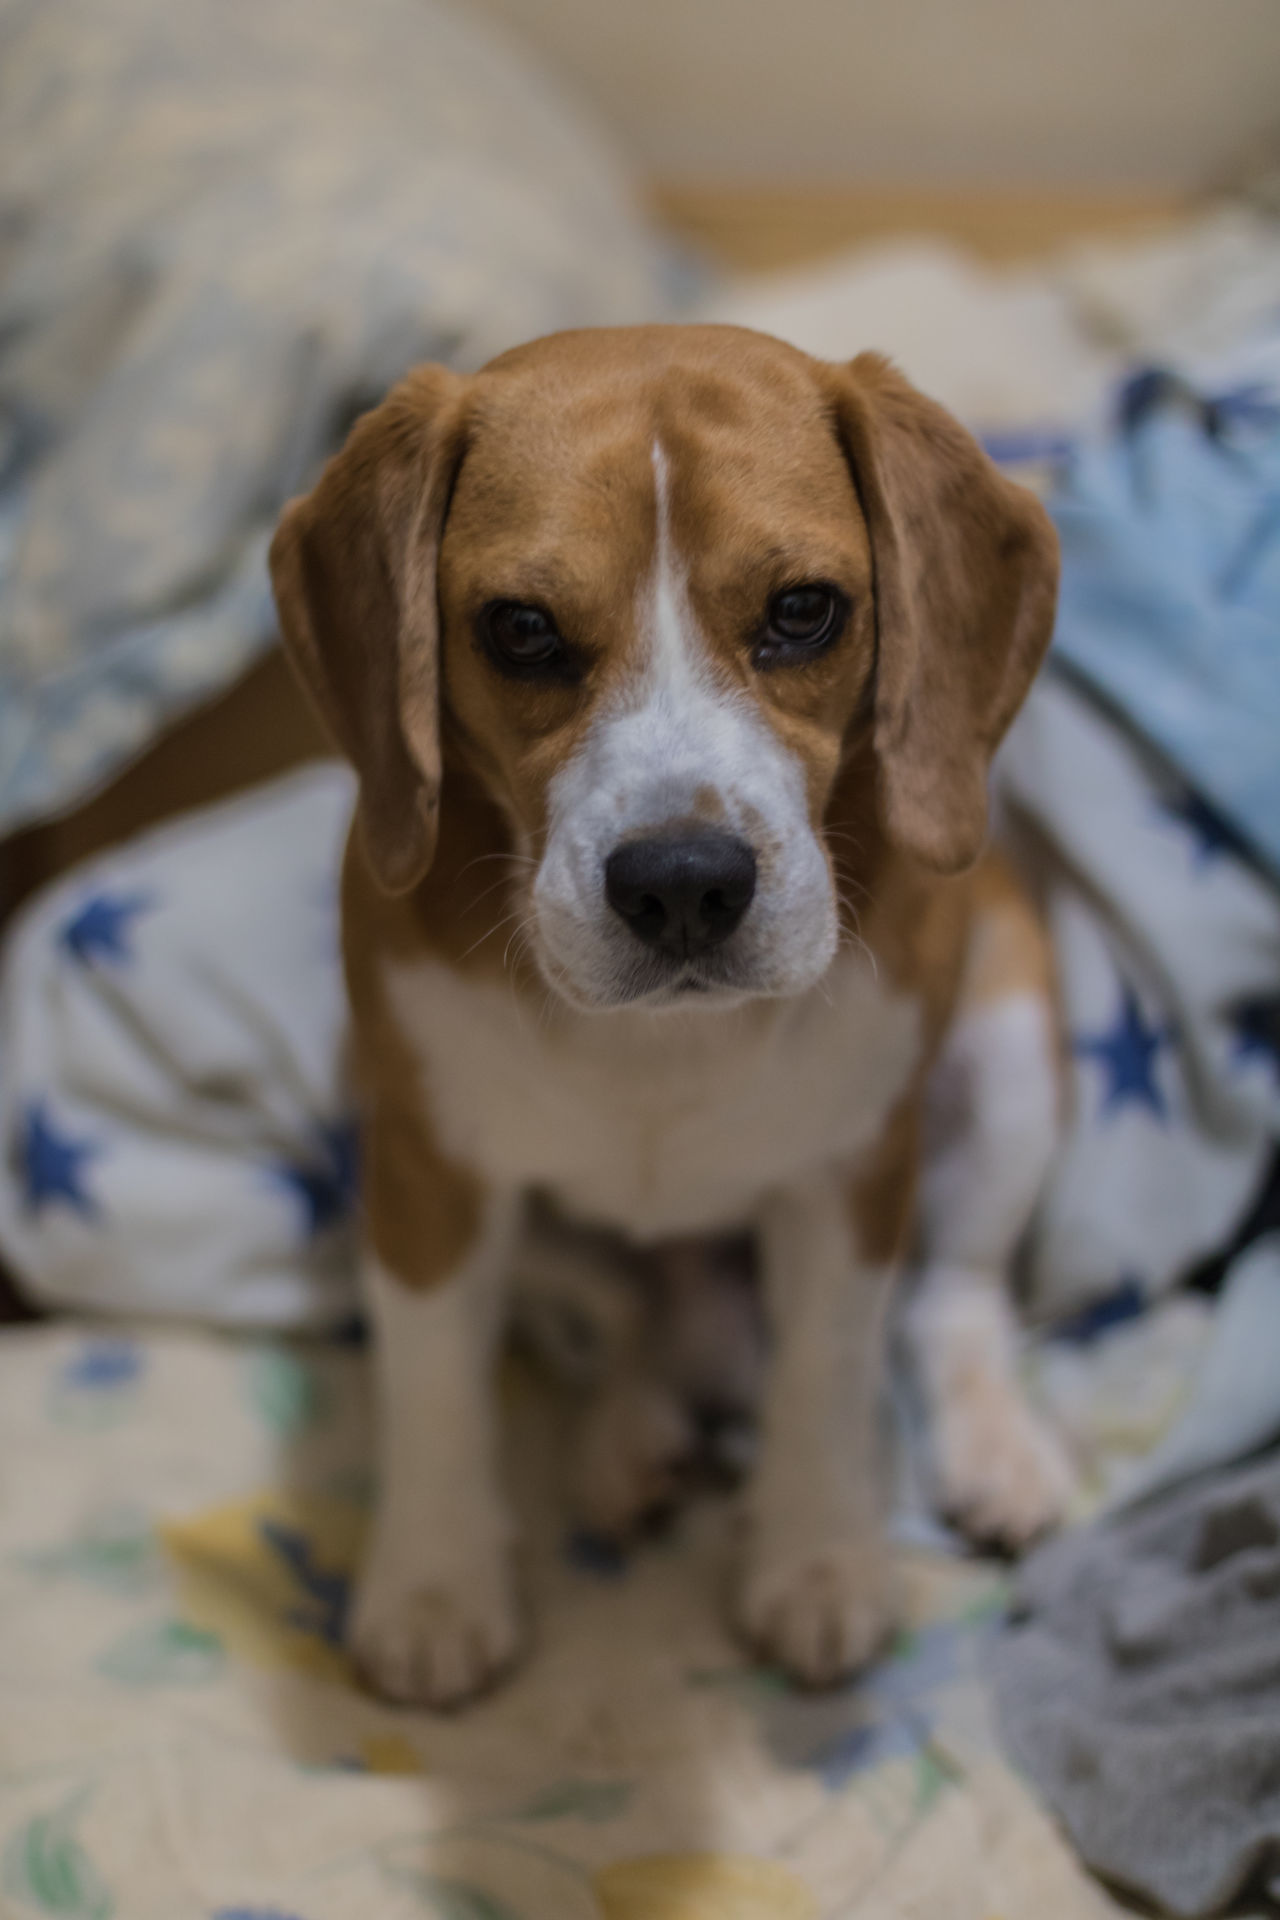 Dog Pets Animal Cute Looking At Camera Domestic Animals Beagle Portrait Young Animal One Animal No People Indoors  Friendship Pleading Animal Themes Friend Pose Atencion Look Canine Canon750D 50mm 1.4 Leasing Bed Brasília - Brazil